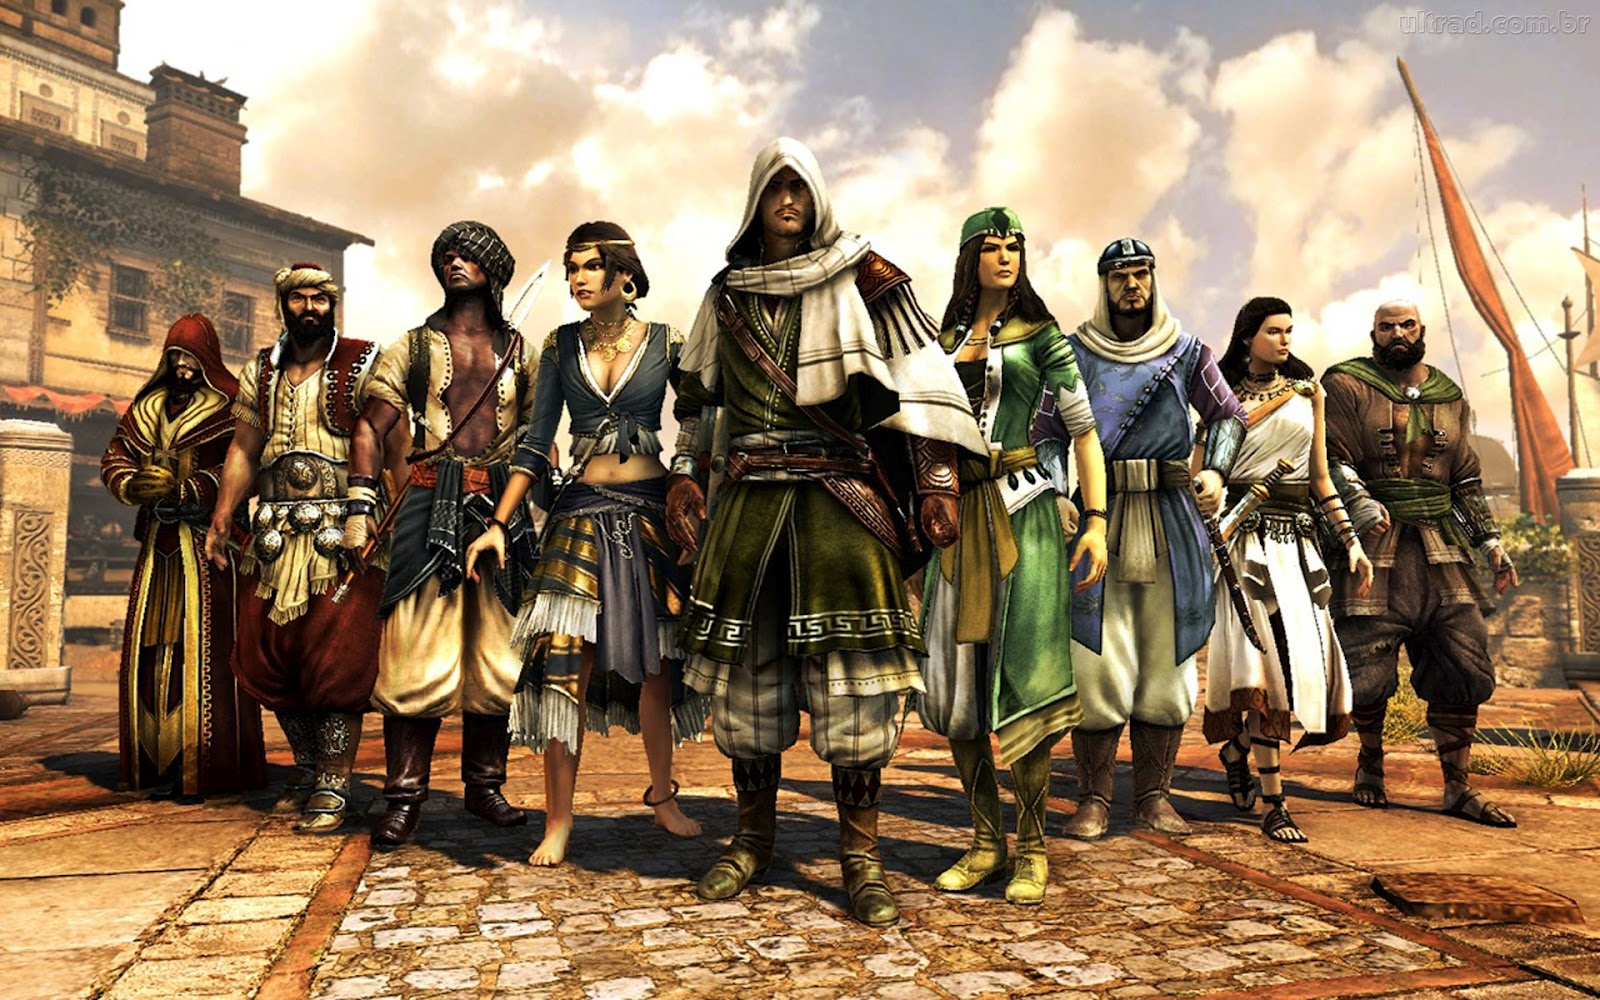 http://2.bp.blogspot.com/-CgSPHb1EyH0/T_pcfsx93kI/AAAAAAAAB-U/_Z9sO_FID4E/s1600/Assassin%27s+Creed+Revelations+HD+HQ+Wallpapers%7Bfreehqwallpapers.blogspot.com%7D+%284%29.jpg